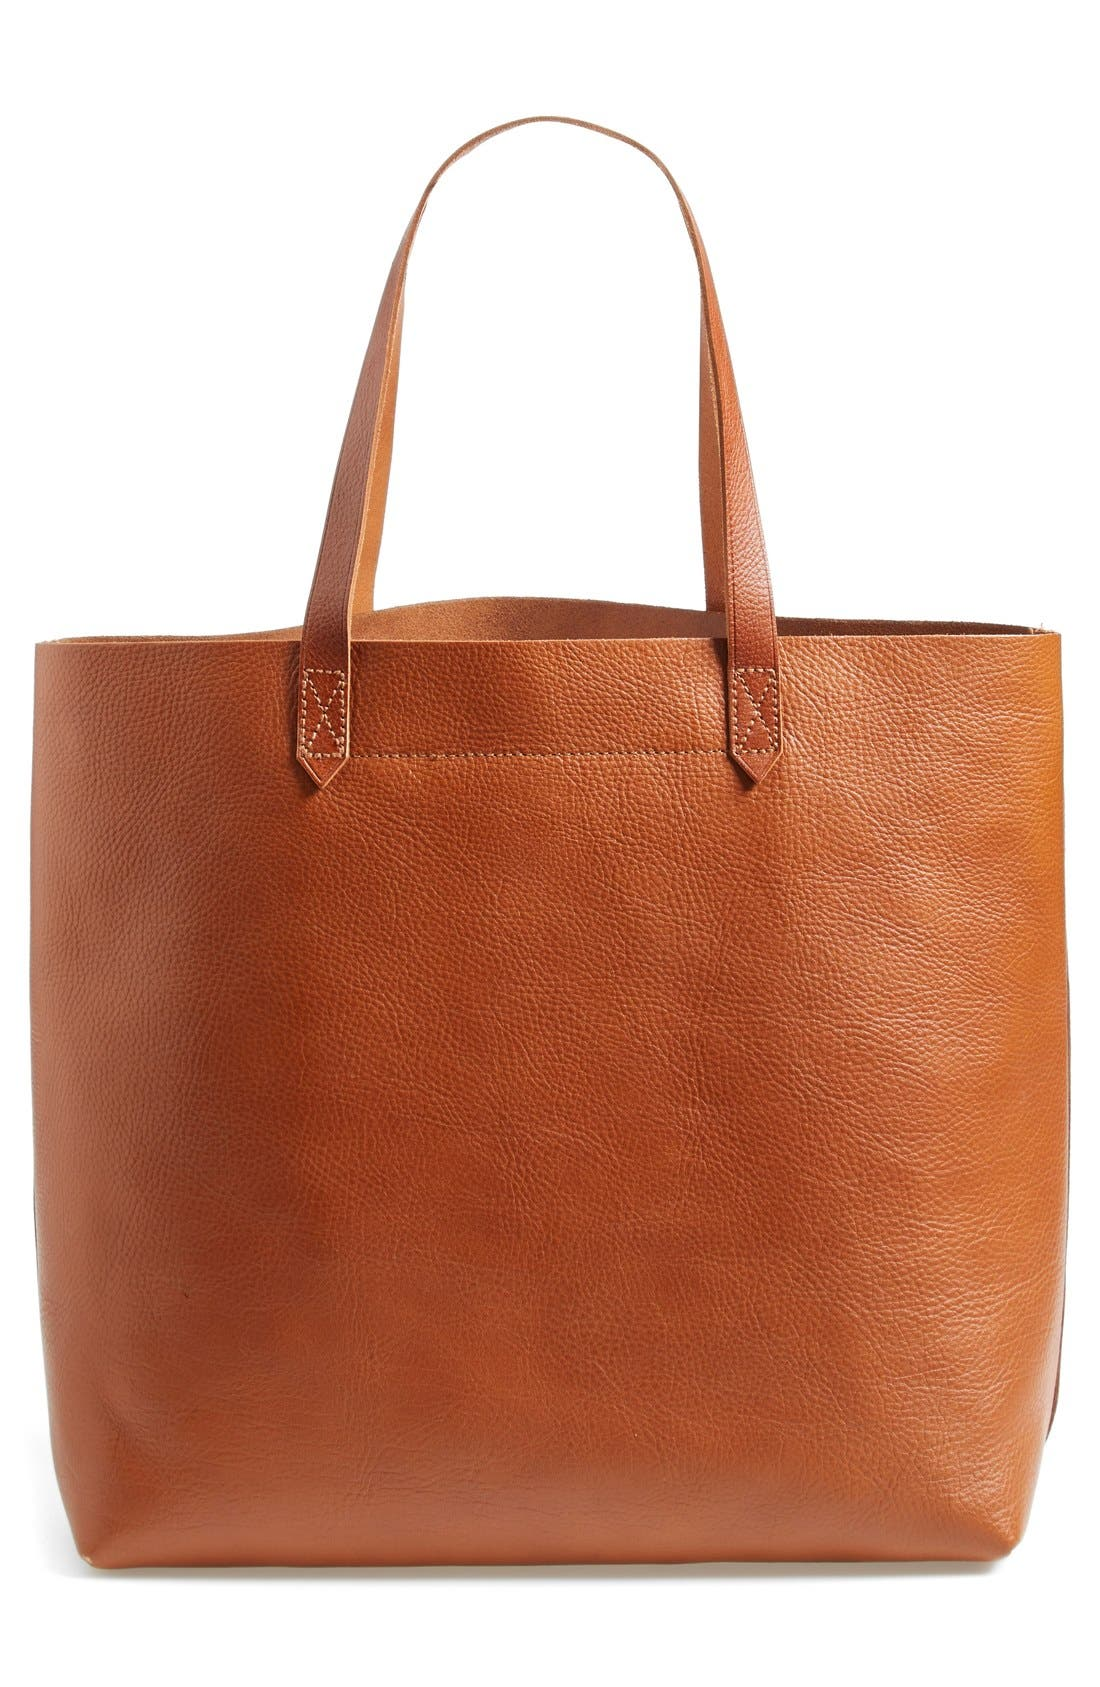 Main Image - Madewell 'The Transport' Leather Tote